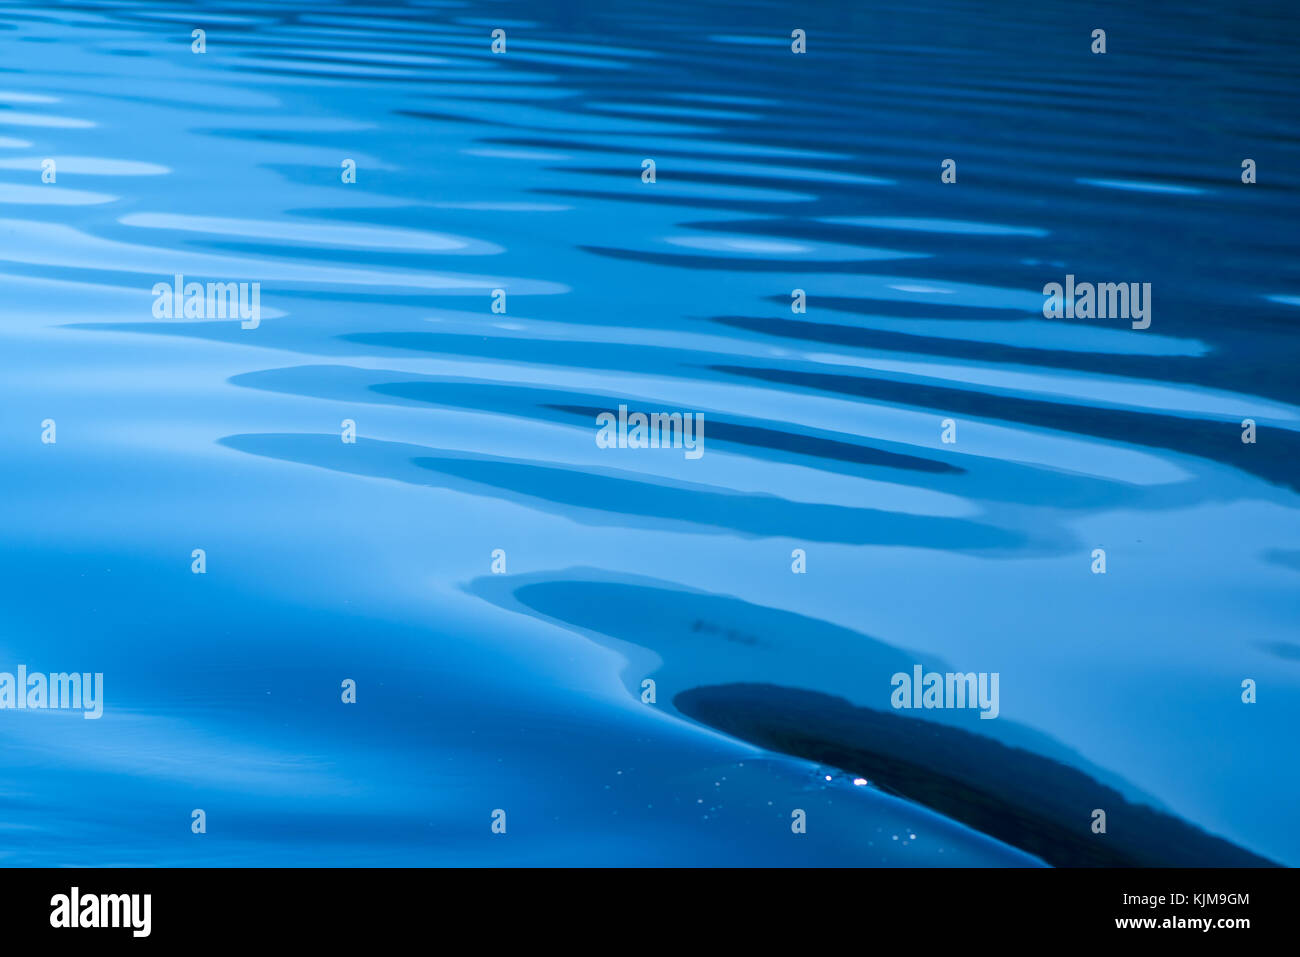 Blue rippled water as abstract background. Tranquil surface texture of the lake. - Stock Image